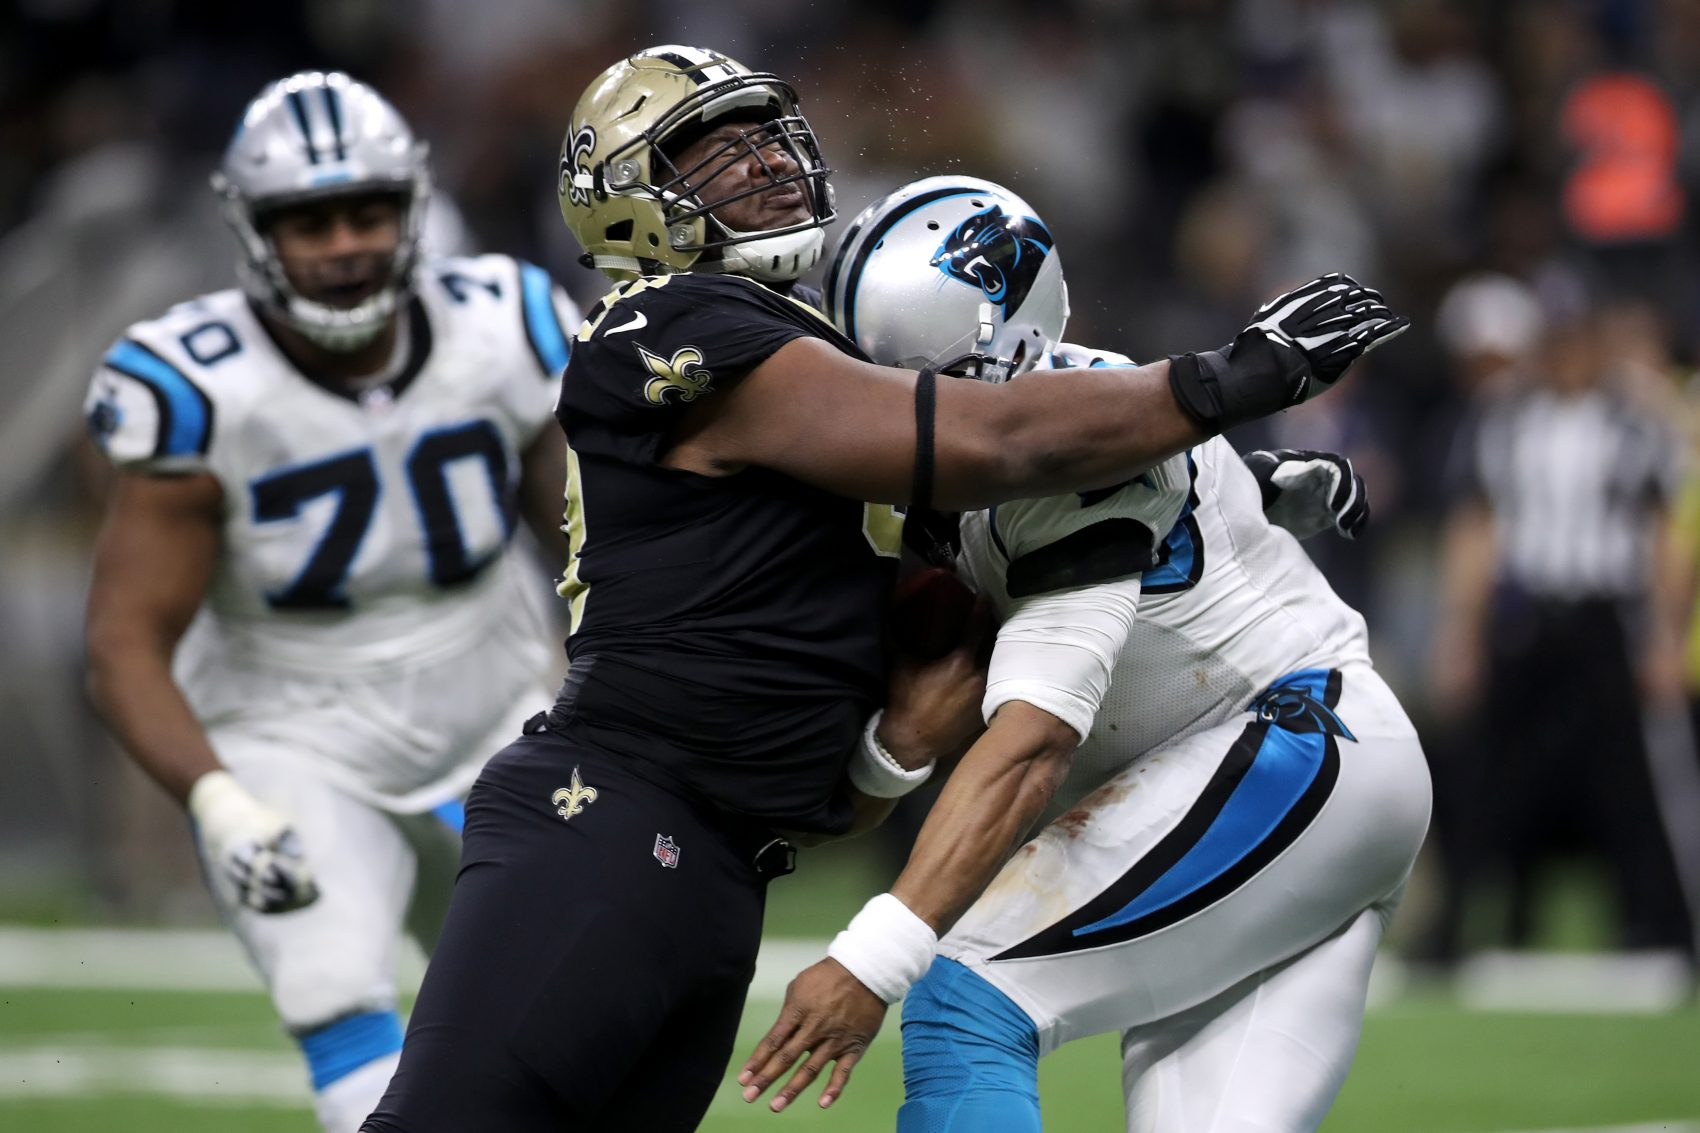 David Onyemata of the New Orleans Saints tackles Cam Newton of the Carolina Panthers on Sunday. (Chris Graythen/Getty Images)